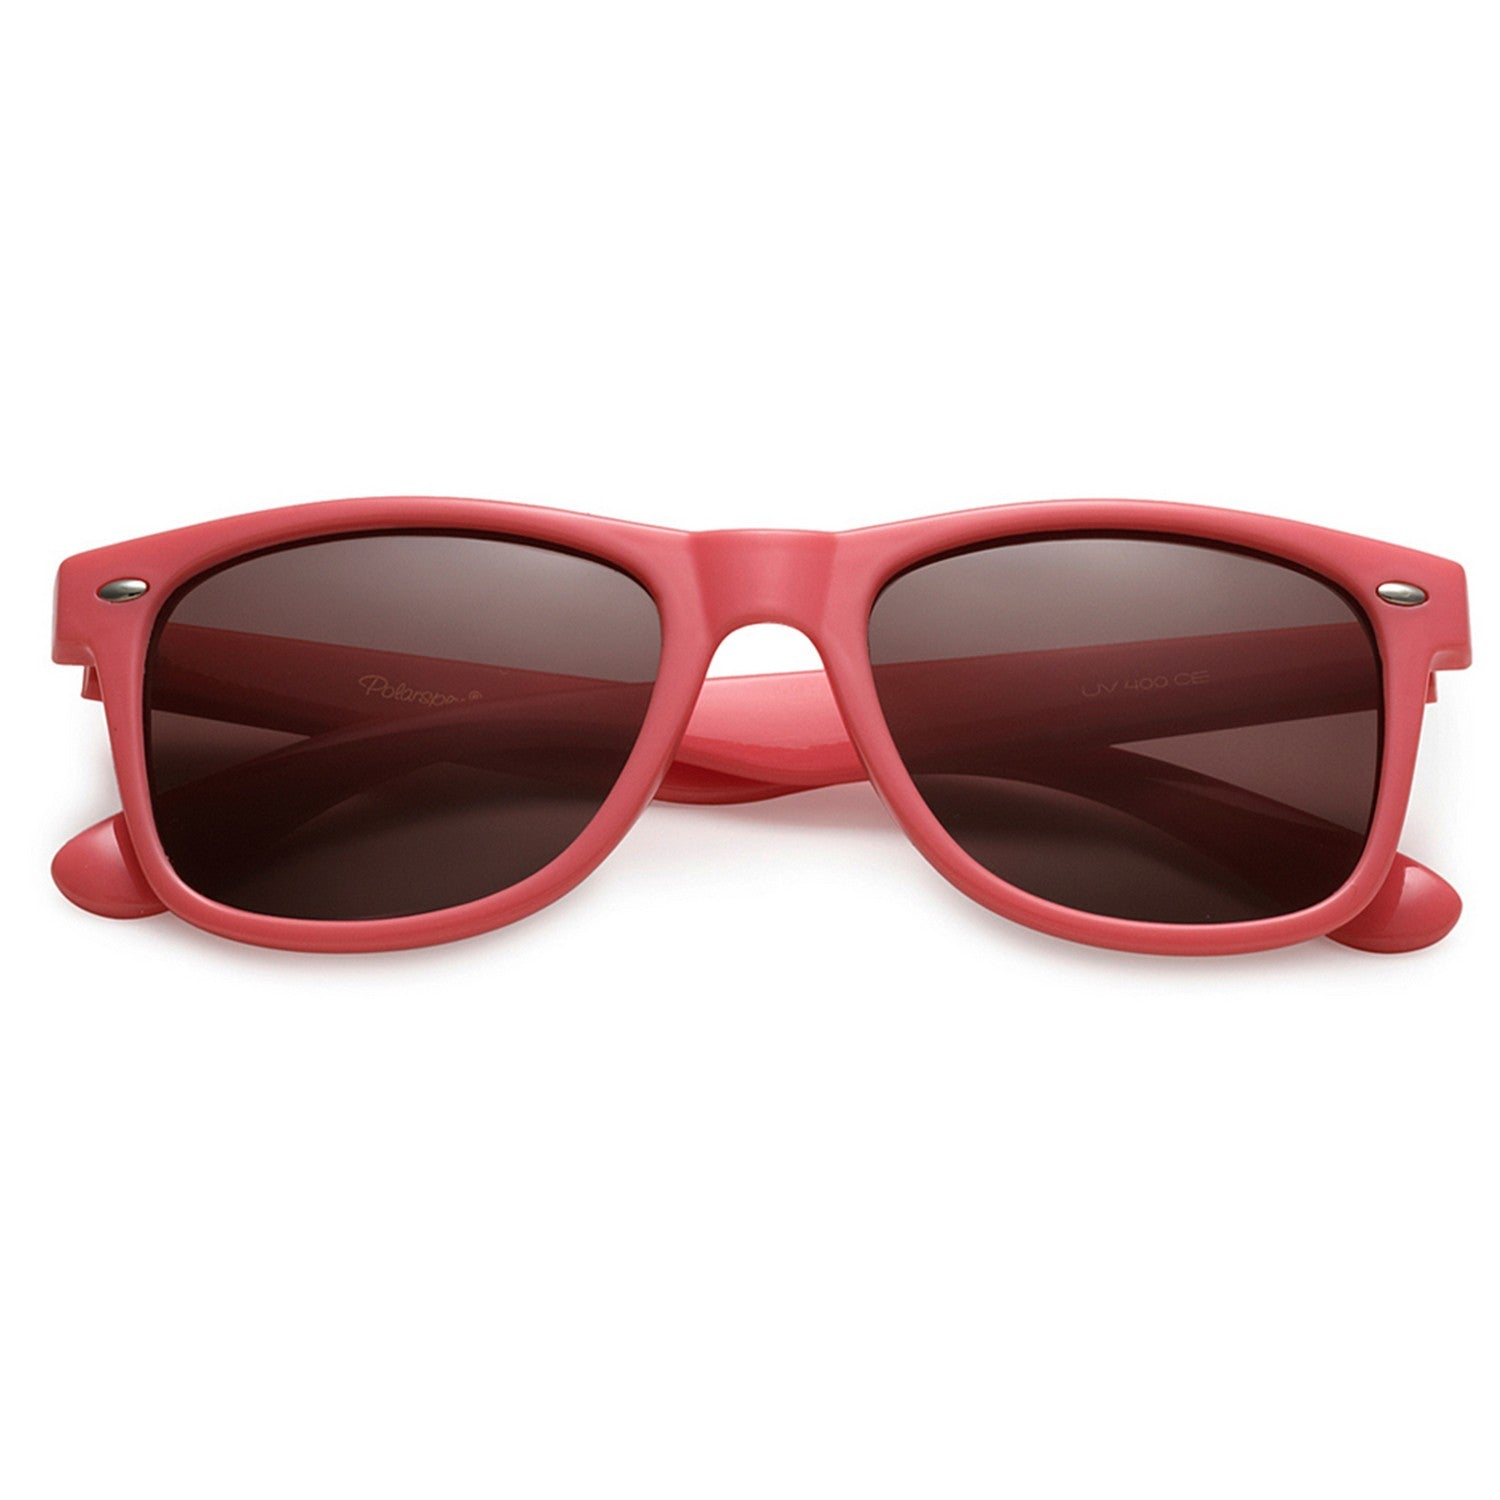 Polarspex Polarized 80's Retro Style Unisex Sunglasses with Ocean Coral Frames and Ash Smoke Lenses